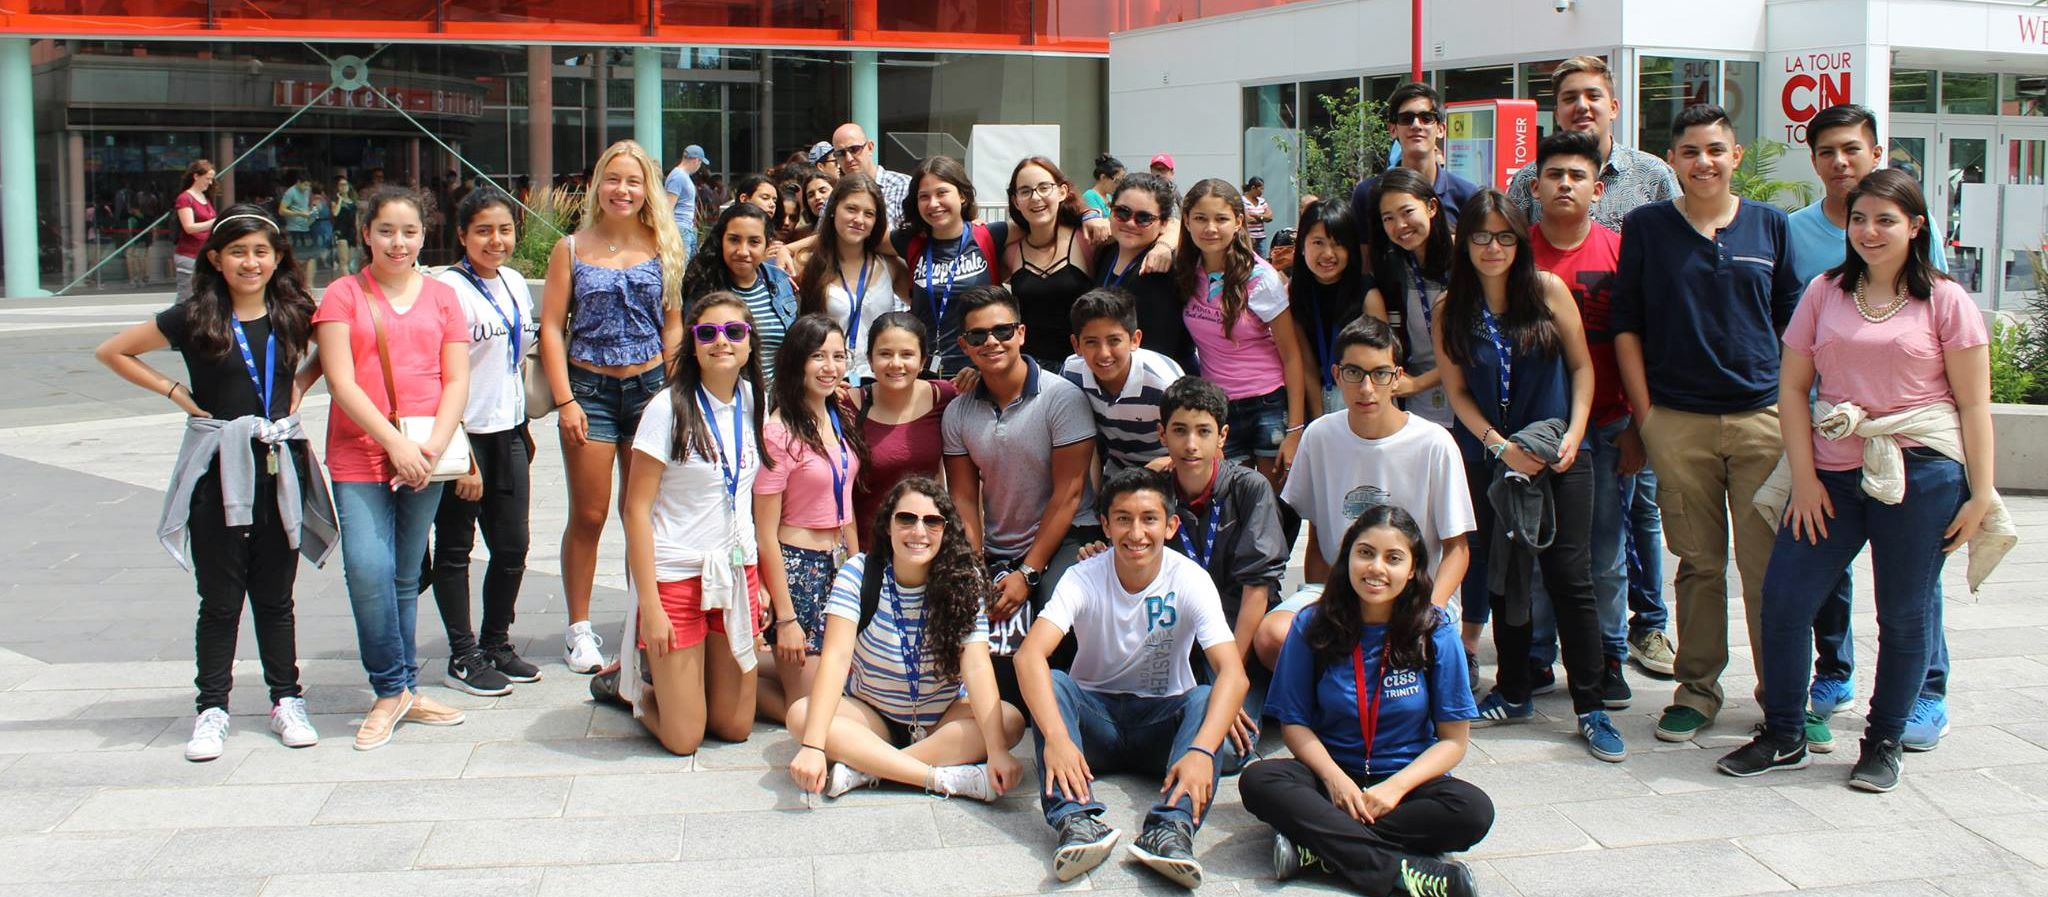 Impressionen eines Trinity Summer Camps des Canadian International Student Services